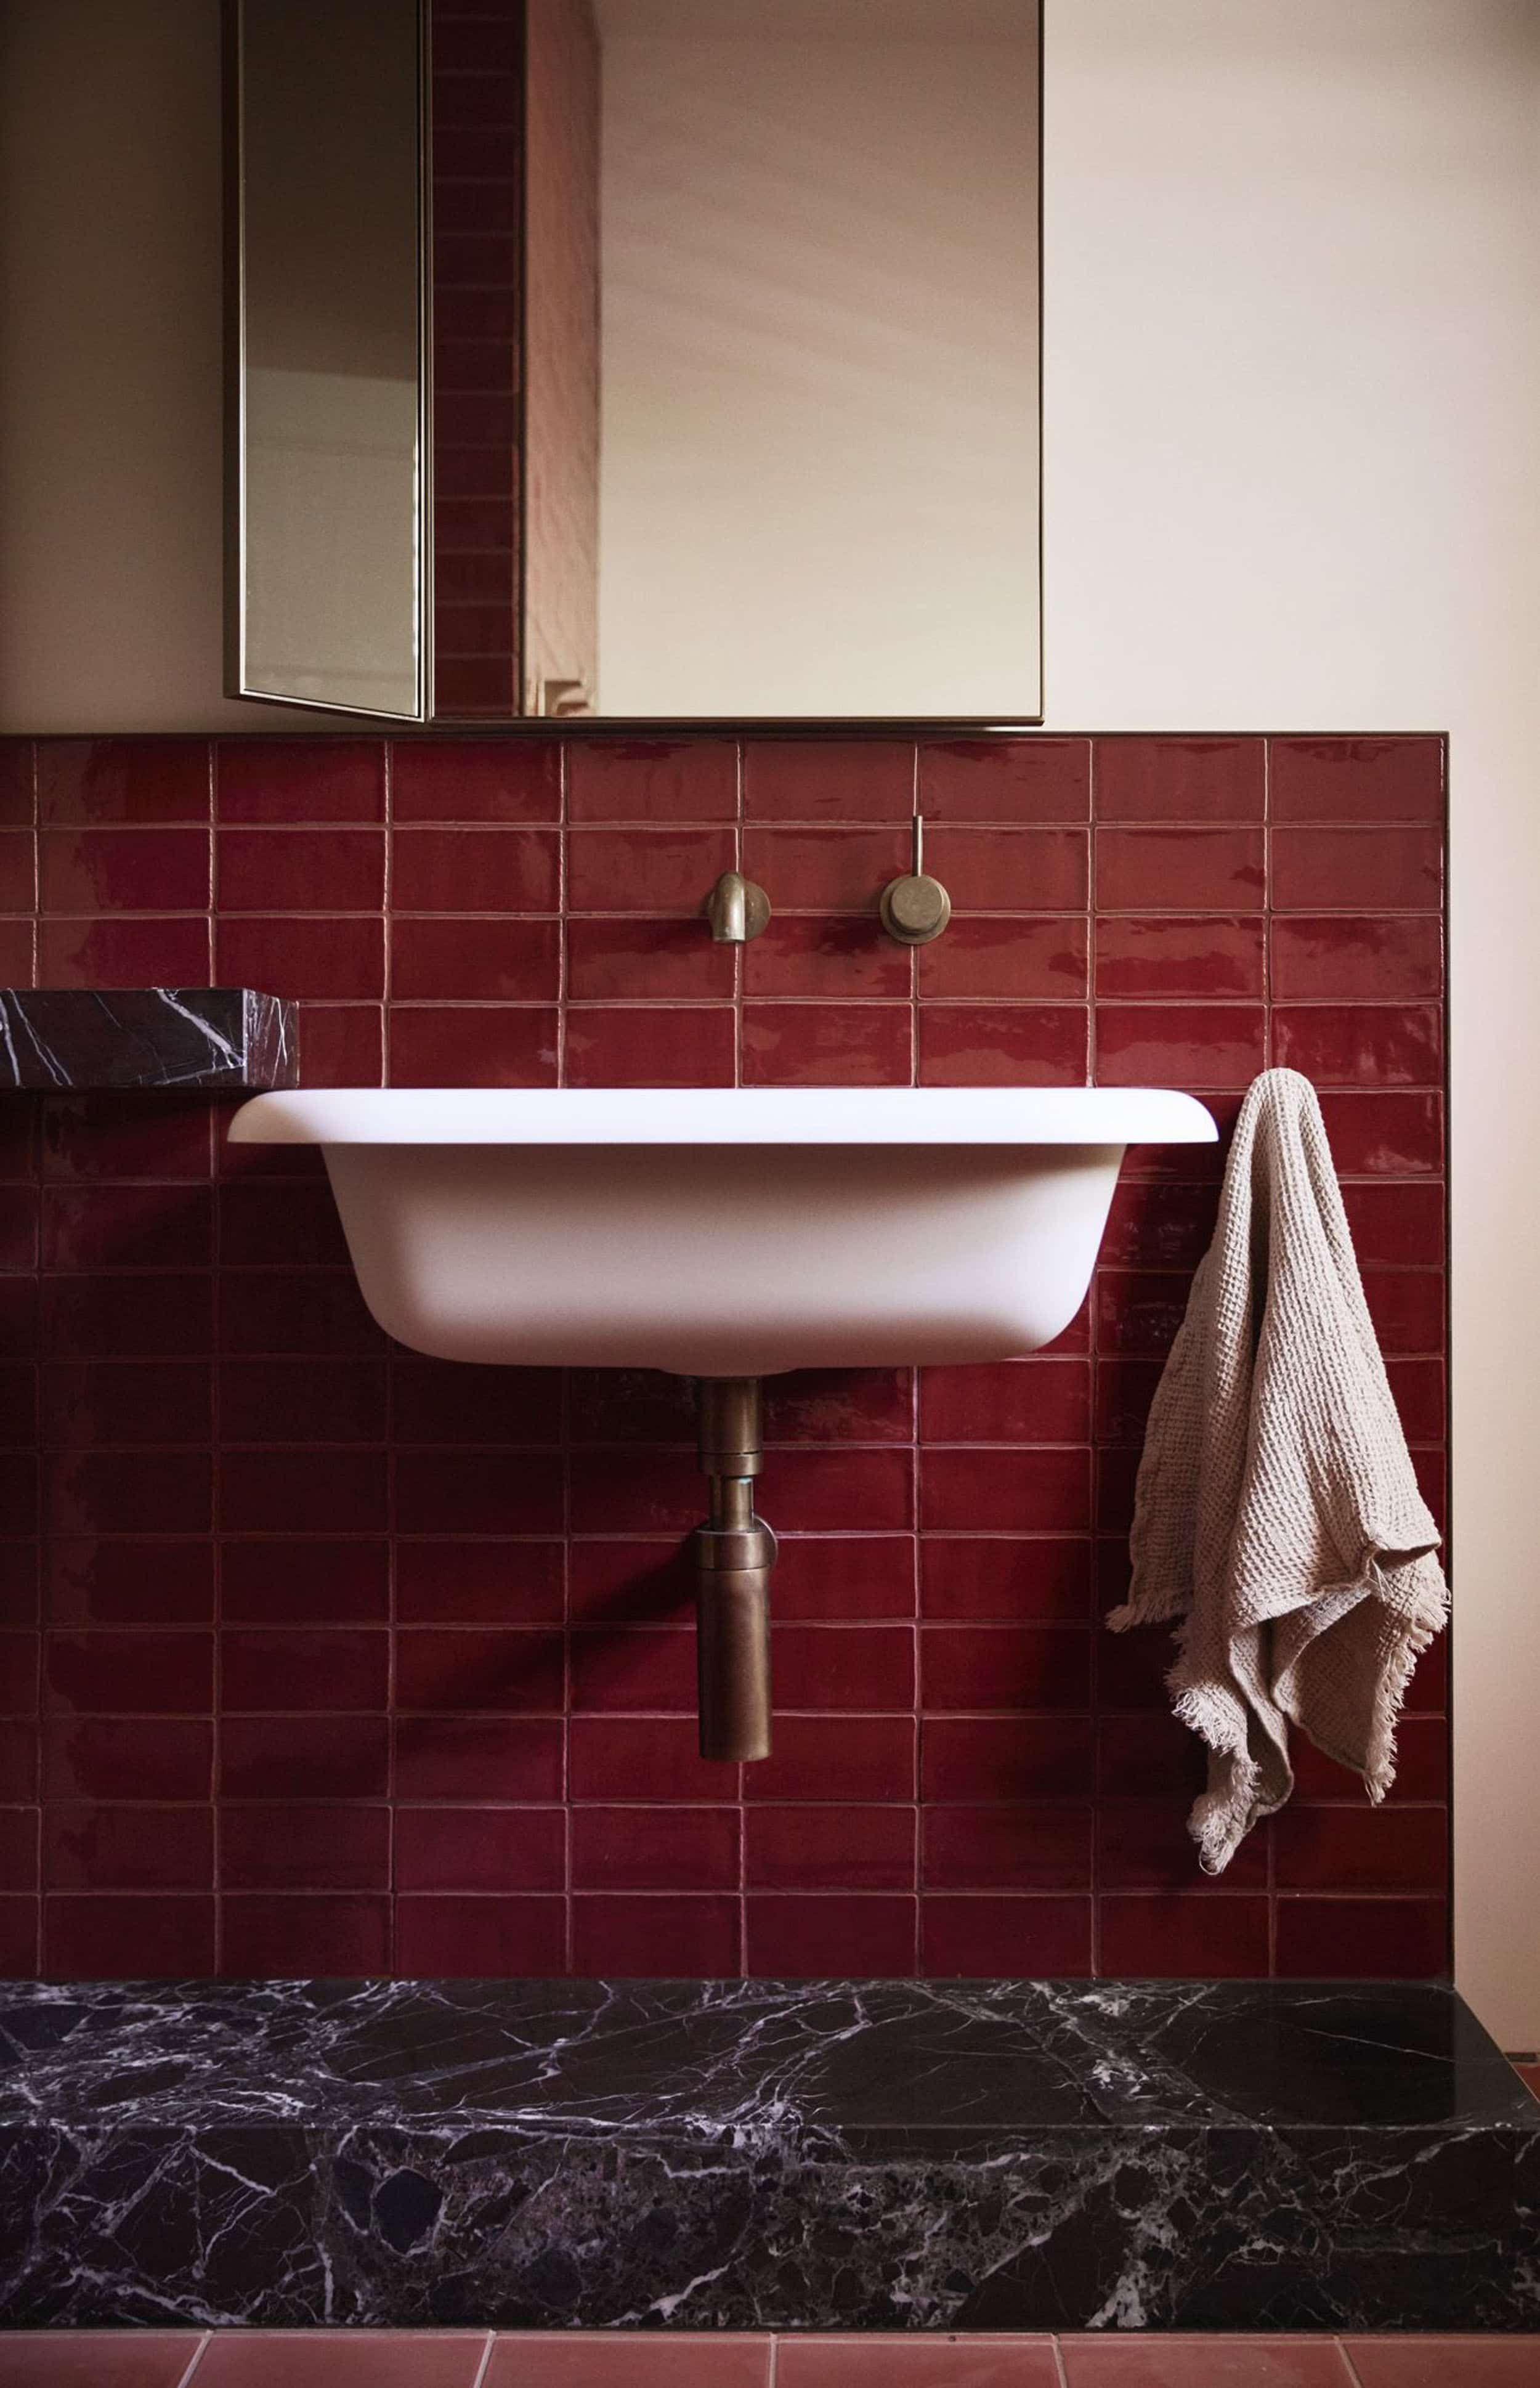 The 5 Accent Color Trends We Are Extremely Excited About In 2020 Emily Henderson In 2020 Burgundy Bathroom Flack Studio Australian Design